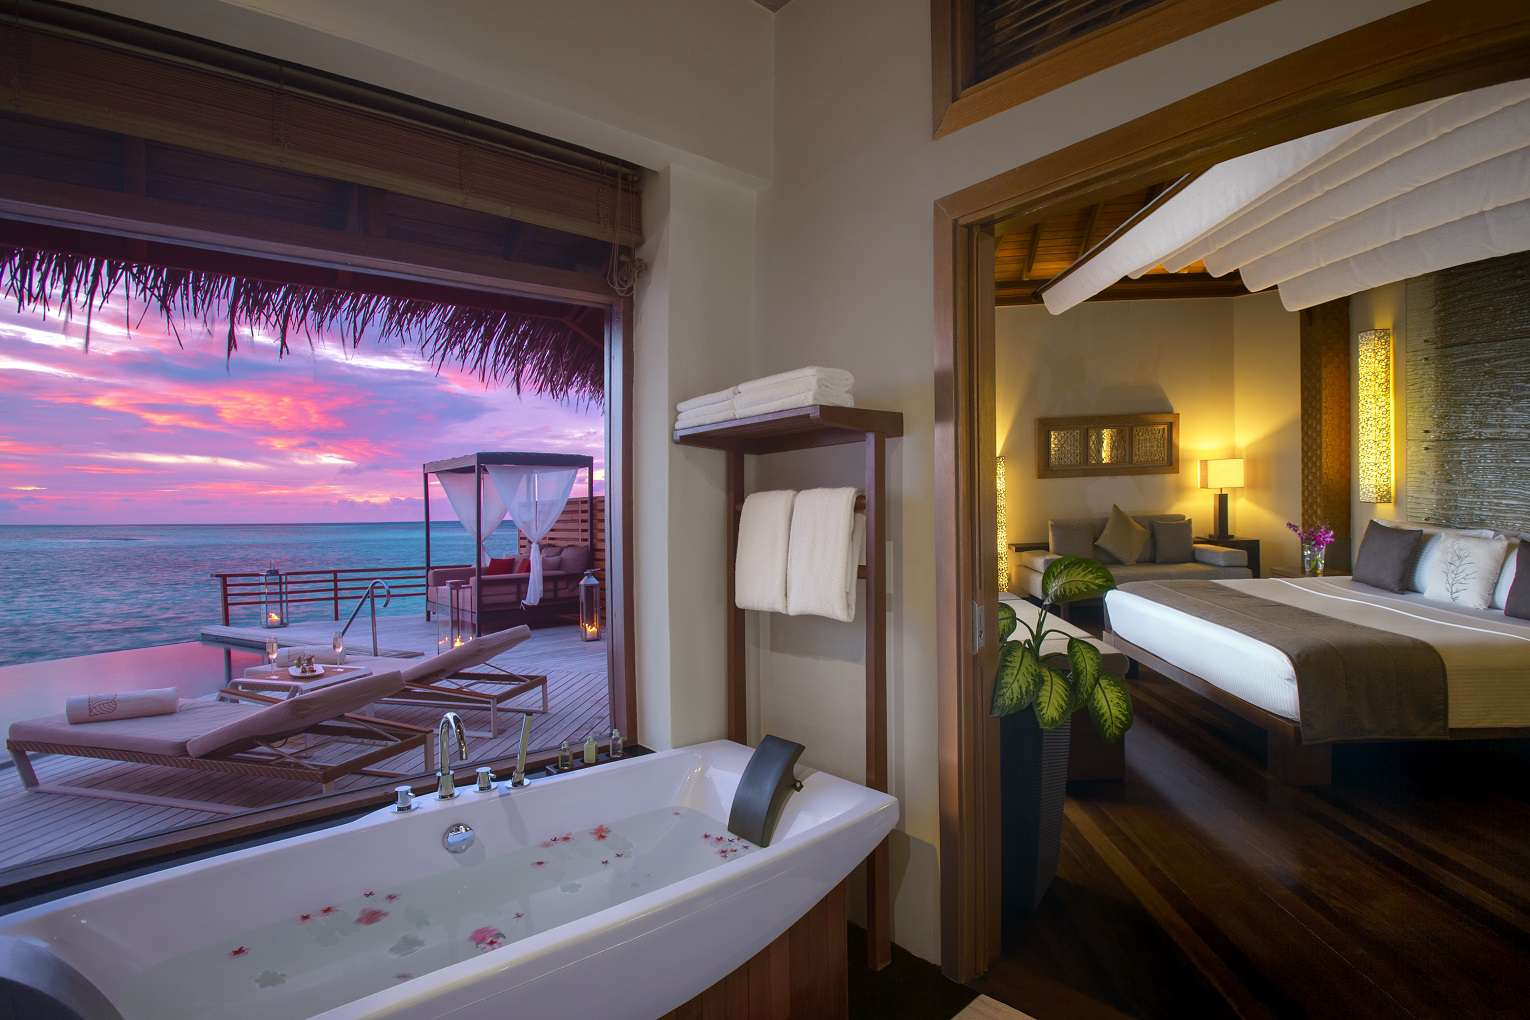 Photo of a villa interior with a bathtub to the left of frame and fed to the right. There is a window behind the tub that shows a pink and blue sunset and water front lounge chairs